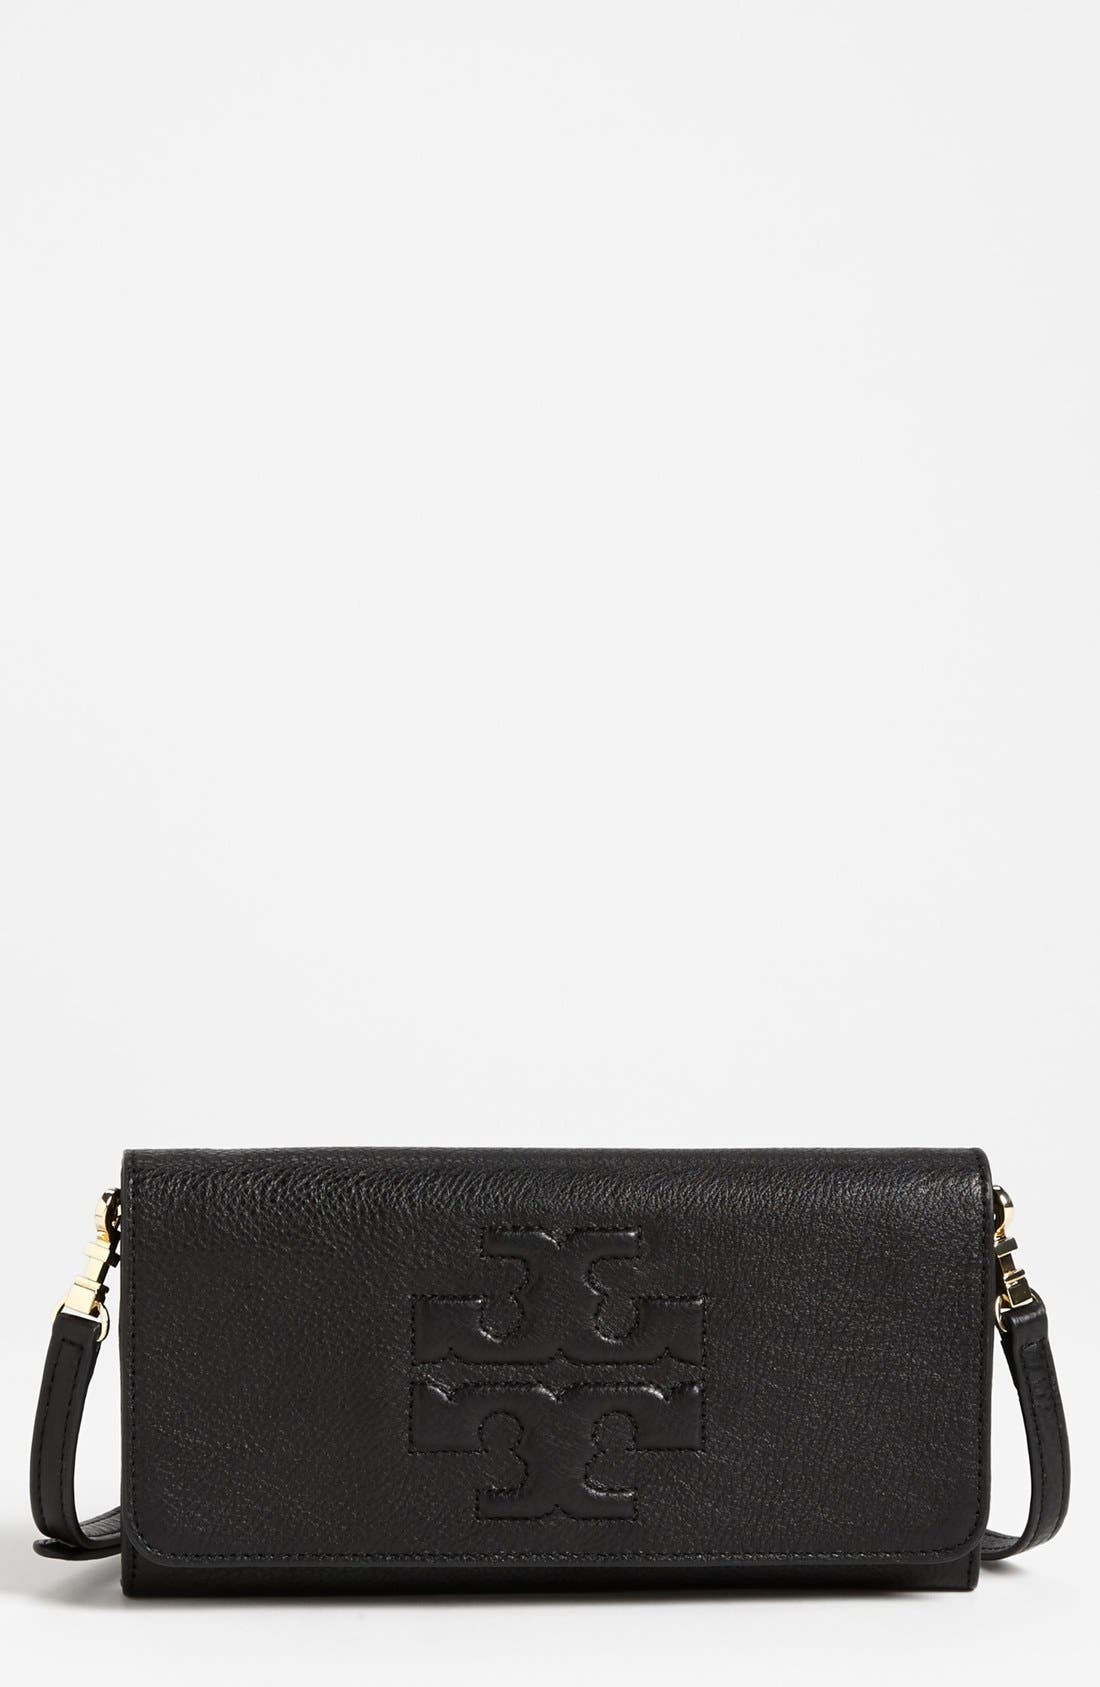 Main Image - Tory Burch 'Thea - Bombe' Leather Clutch